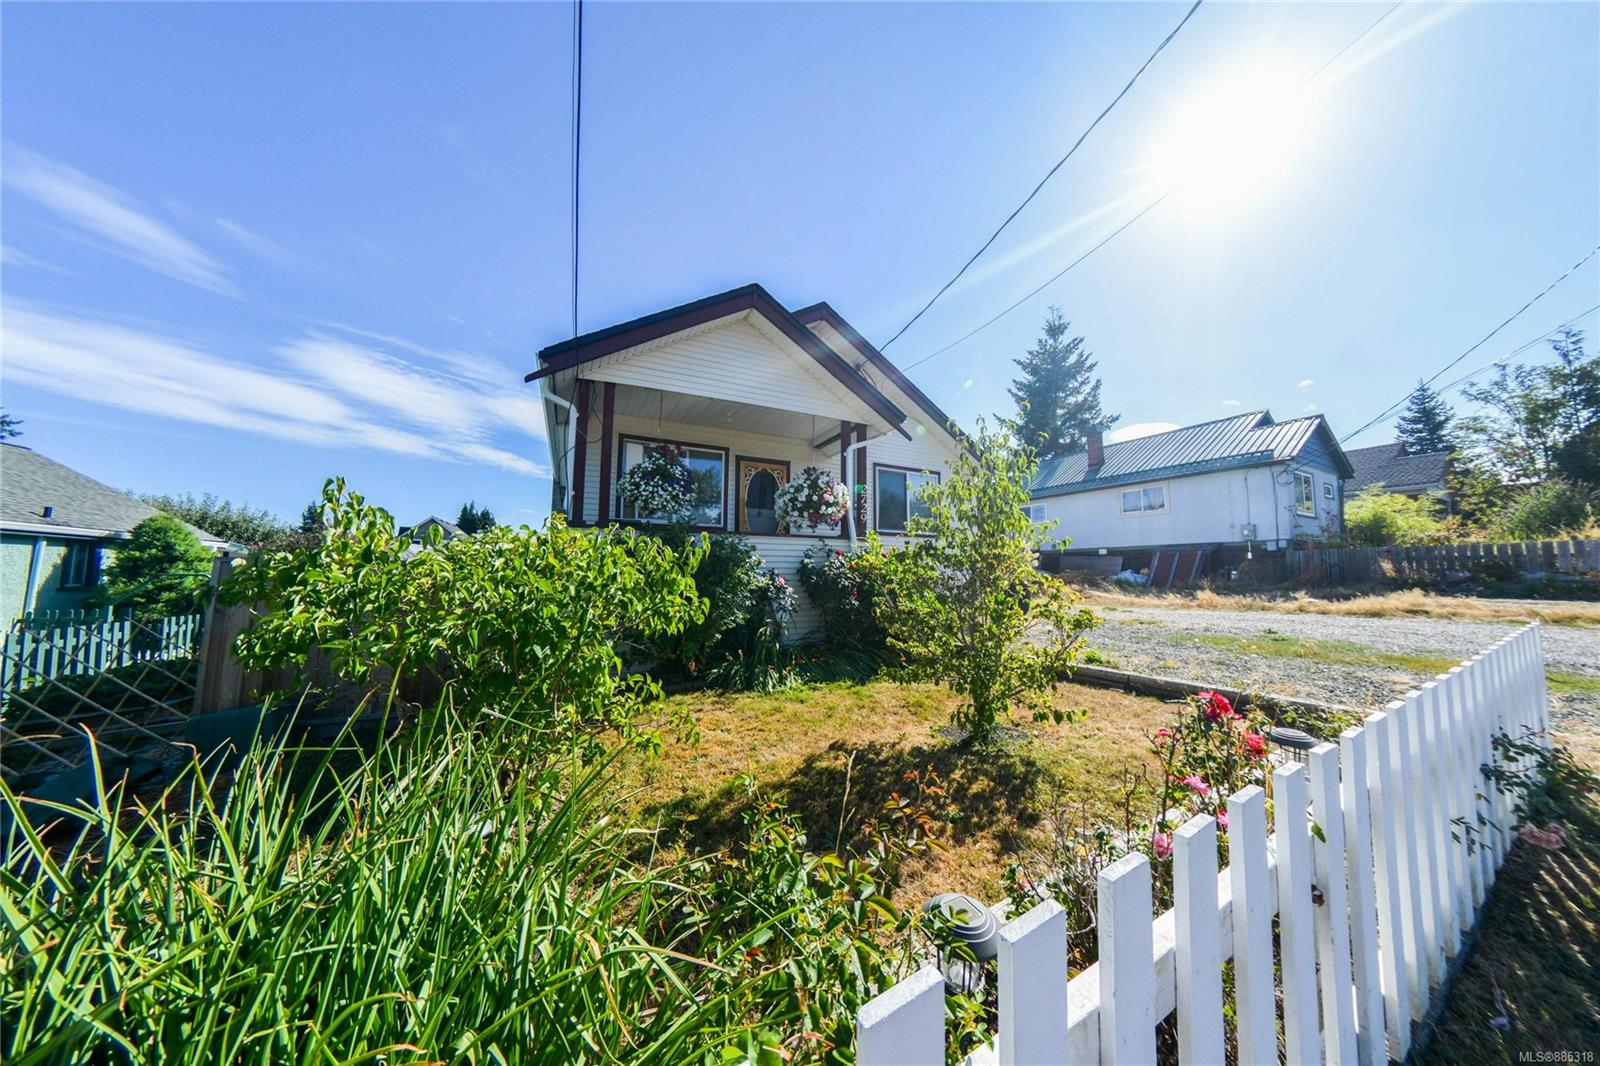 Investor alert...Located in the heart of one of the most popular communities on Vancouver Island. This charming home is one you will want to put on your list. This home features a detached workshop as well as a possible detached 1bedroom in-law suite with its own private entry and parking. This home has been very well maintained and has had many updates over the past few years such as a gas furnace, roof, hot water tank, and almost every Vinyl window have been replaced. This house is move-in ready and has a walkout entry to your walkaround crawlspace. Fully fenced backyard that has 2 amazing well-producing gardens. Be sure to come to check out this Cumberland cutie.